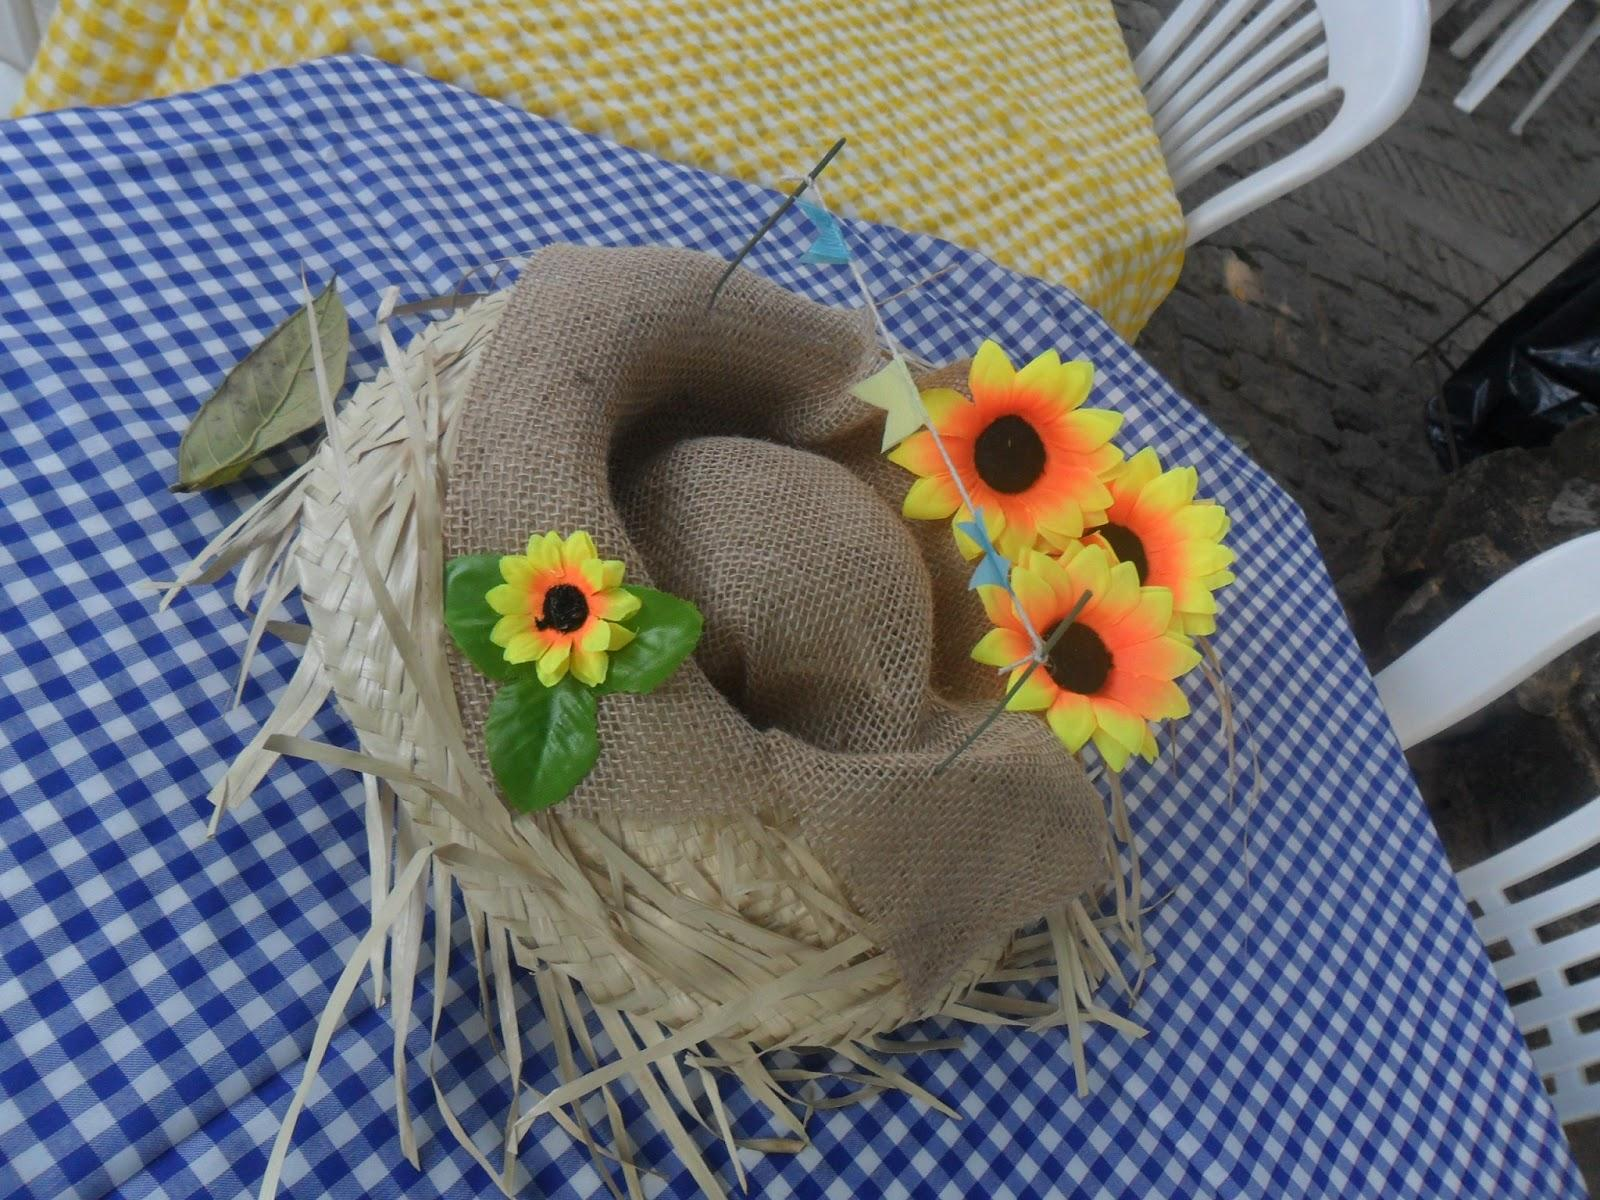 The typical straw hat can be decorated with jute and flowers and become an elegant June party table decoration.